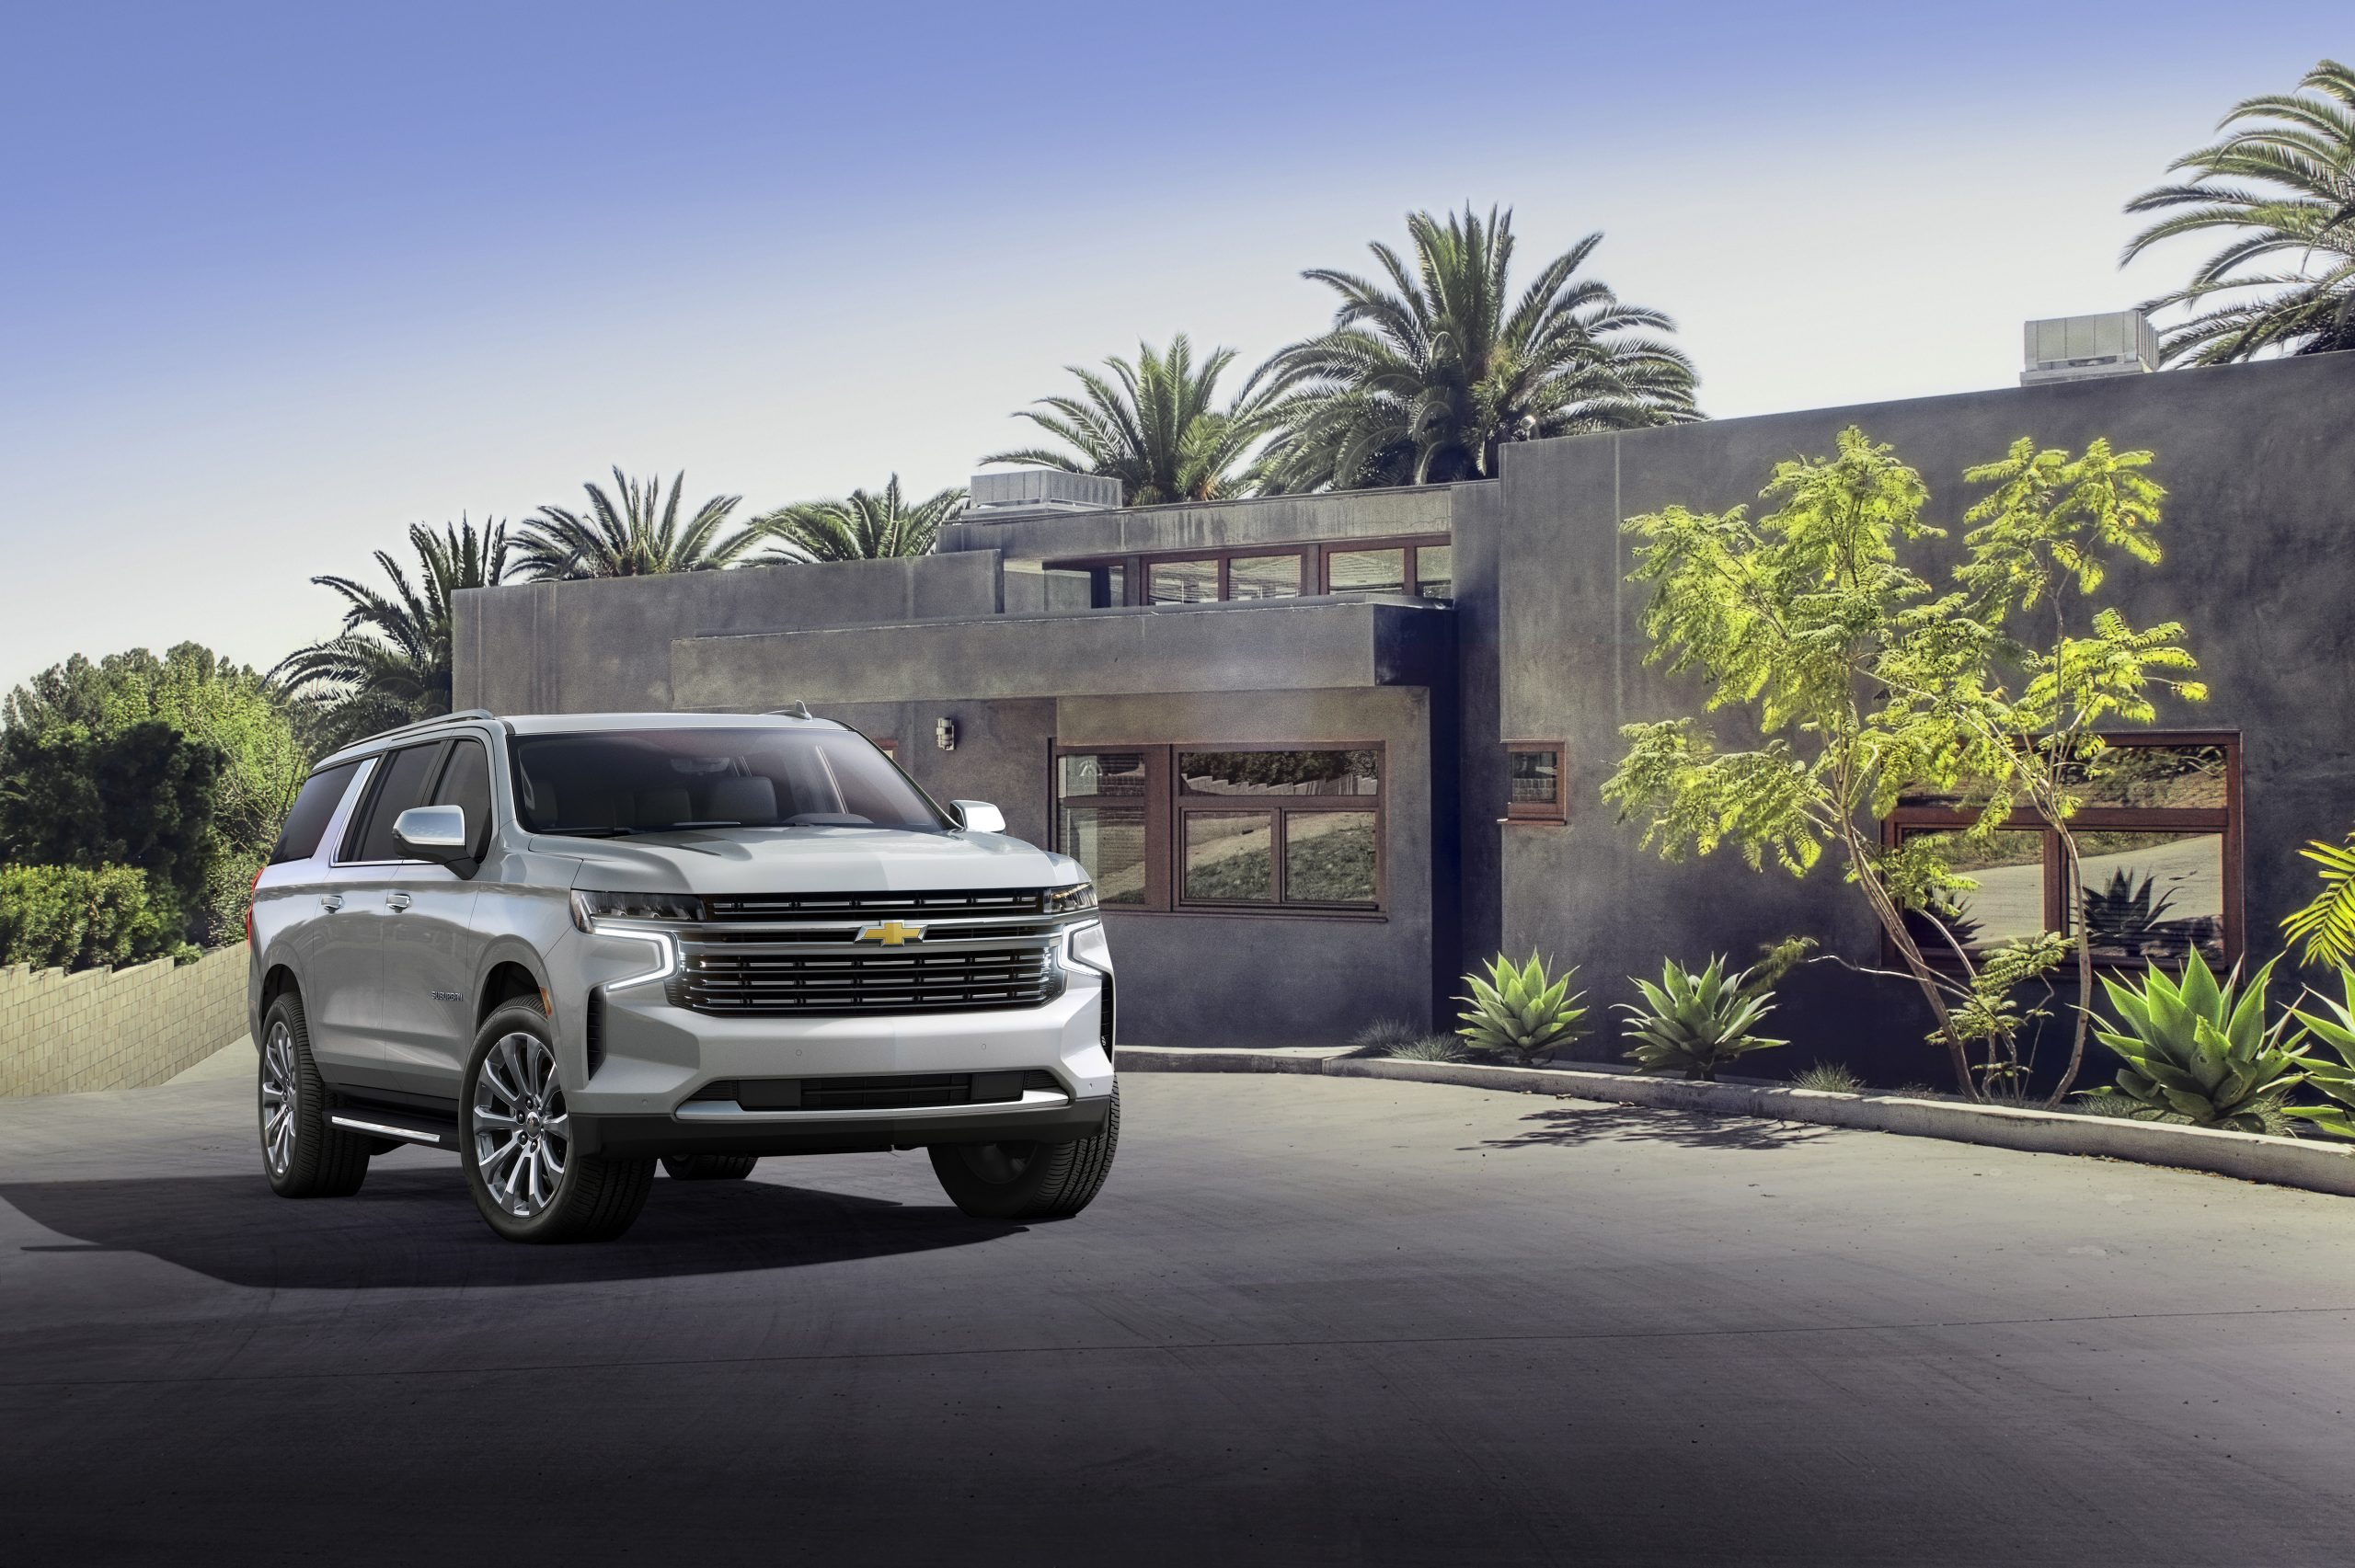 Chevrolet Introduces All-New 2021 Tahoe And Suburban Pictures Of A 2021 Chevy Silverado Headlights, Hp, Height